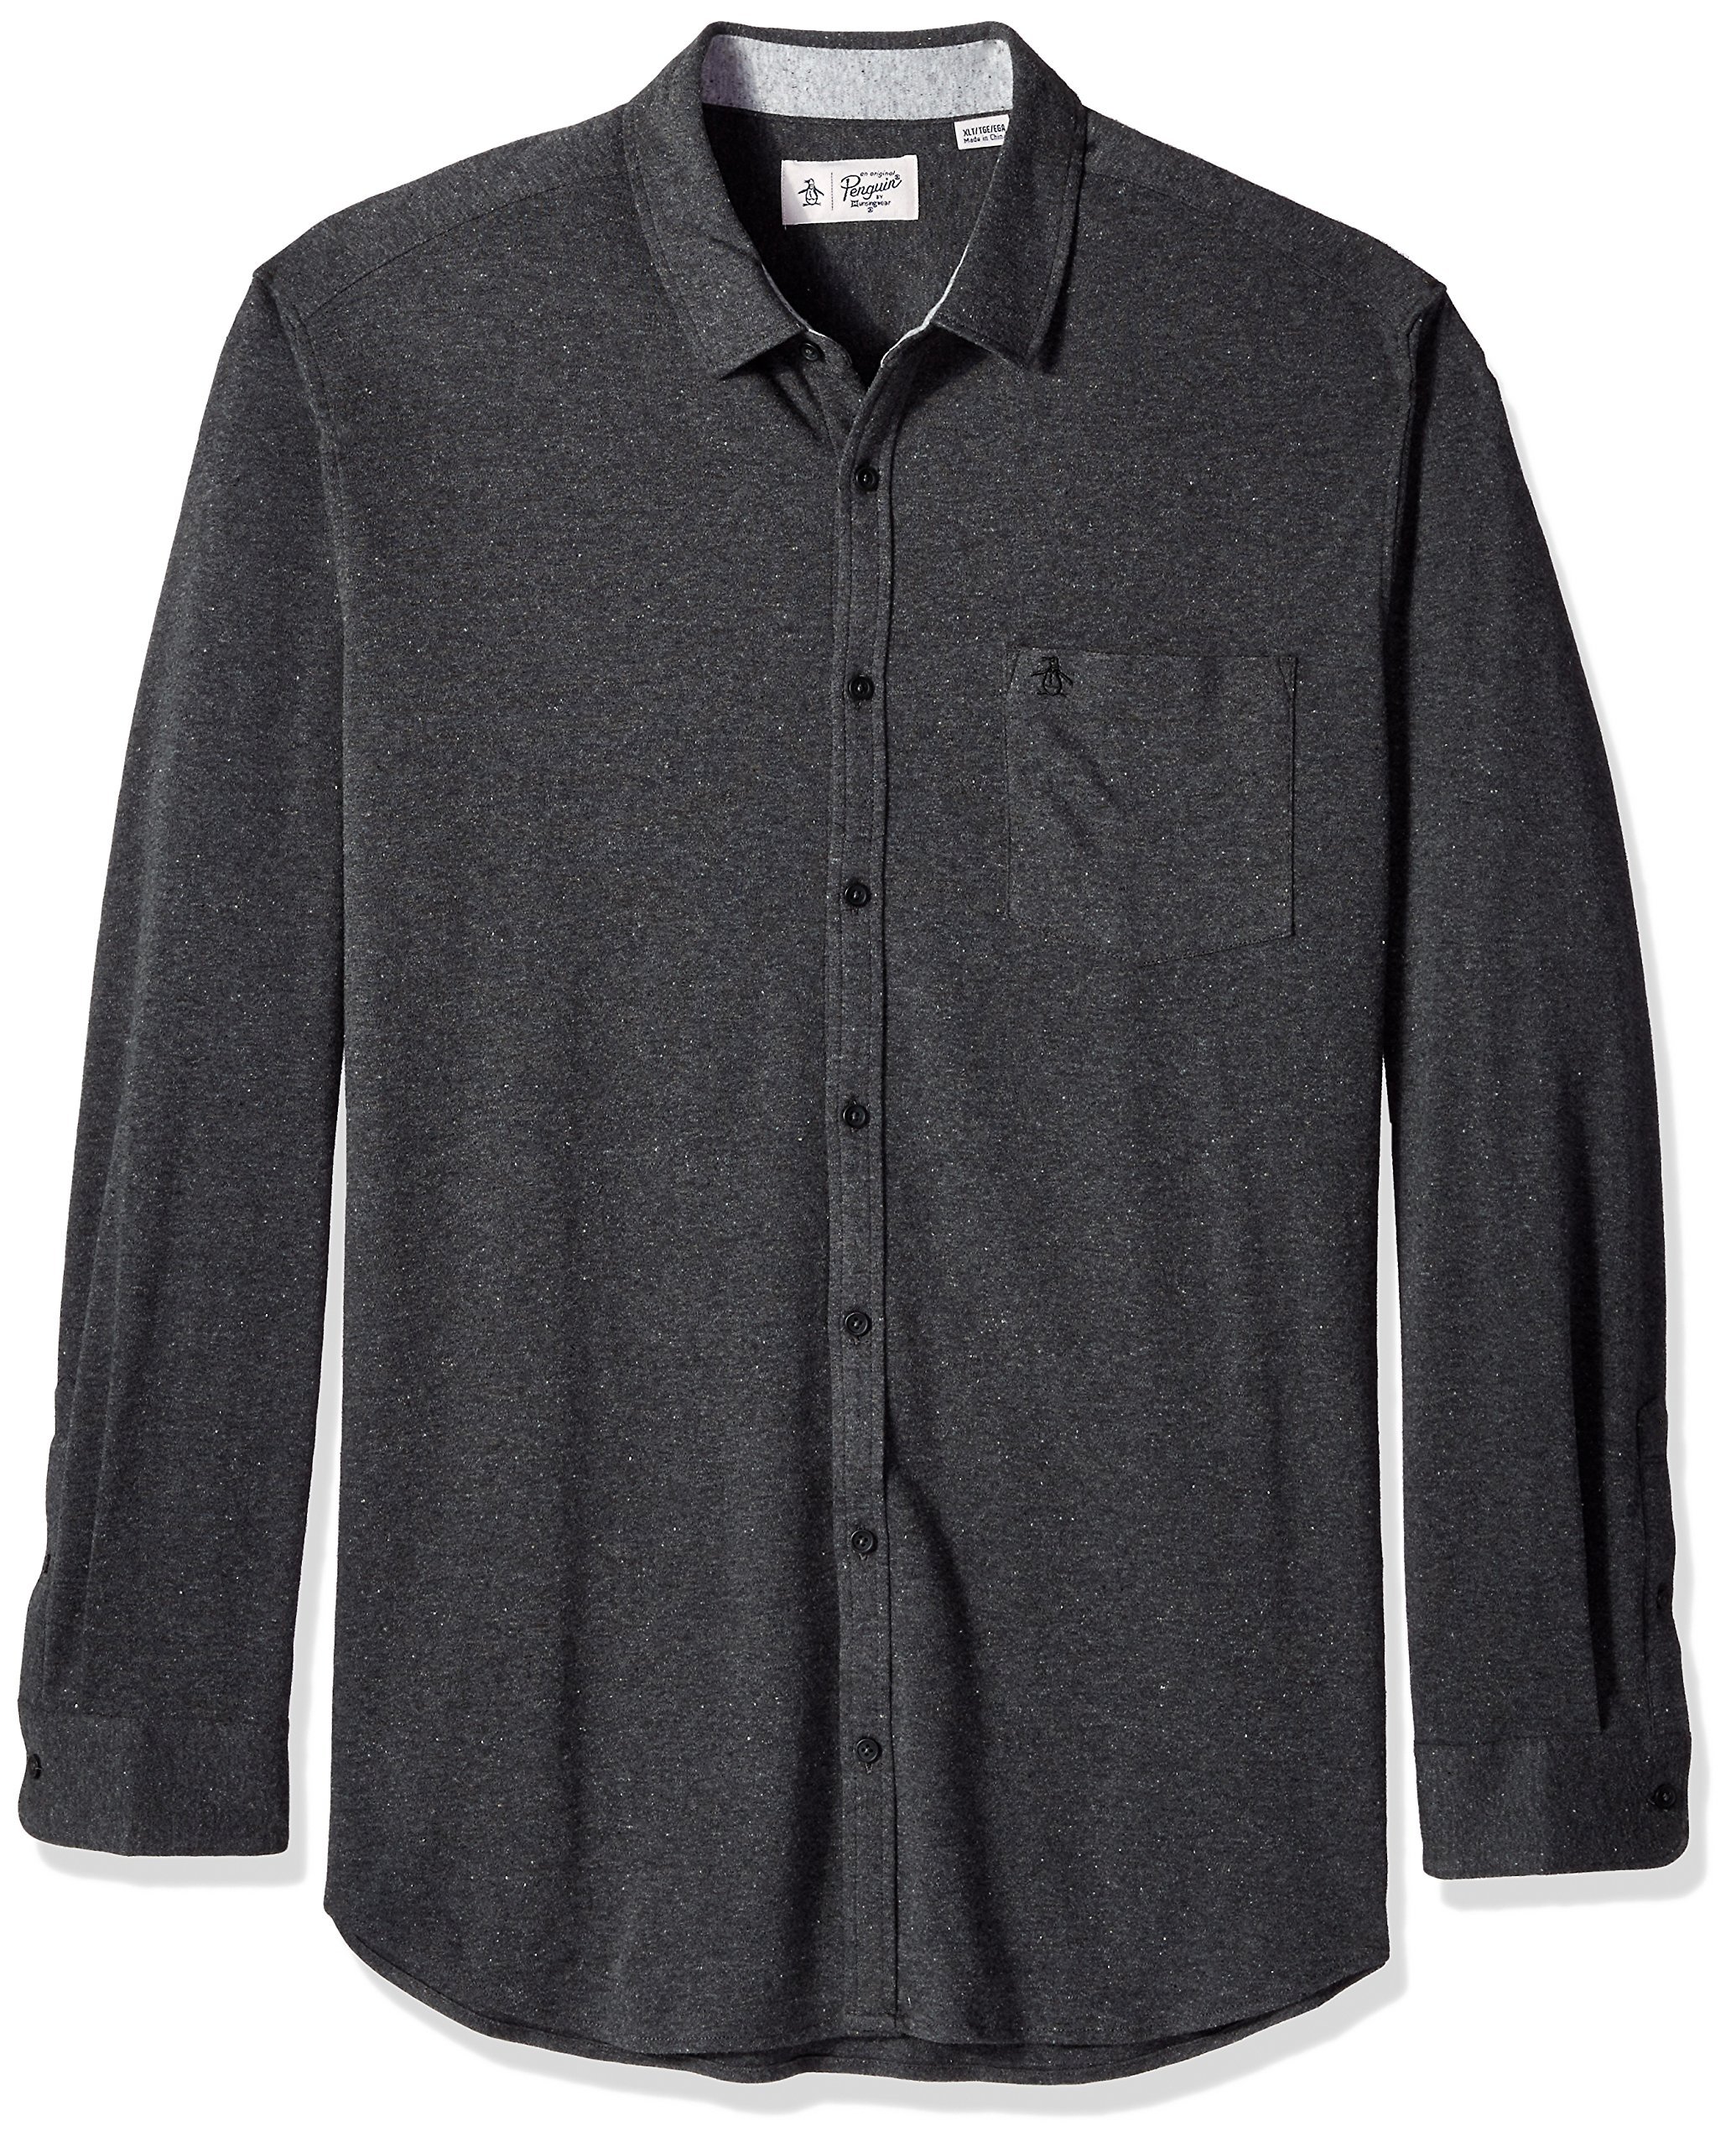 Original Penguin Men's Big Knitted NEP Shirt, Dark Charcoal, 4 XL-Extra Large/Tall